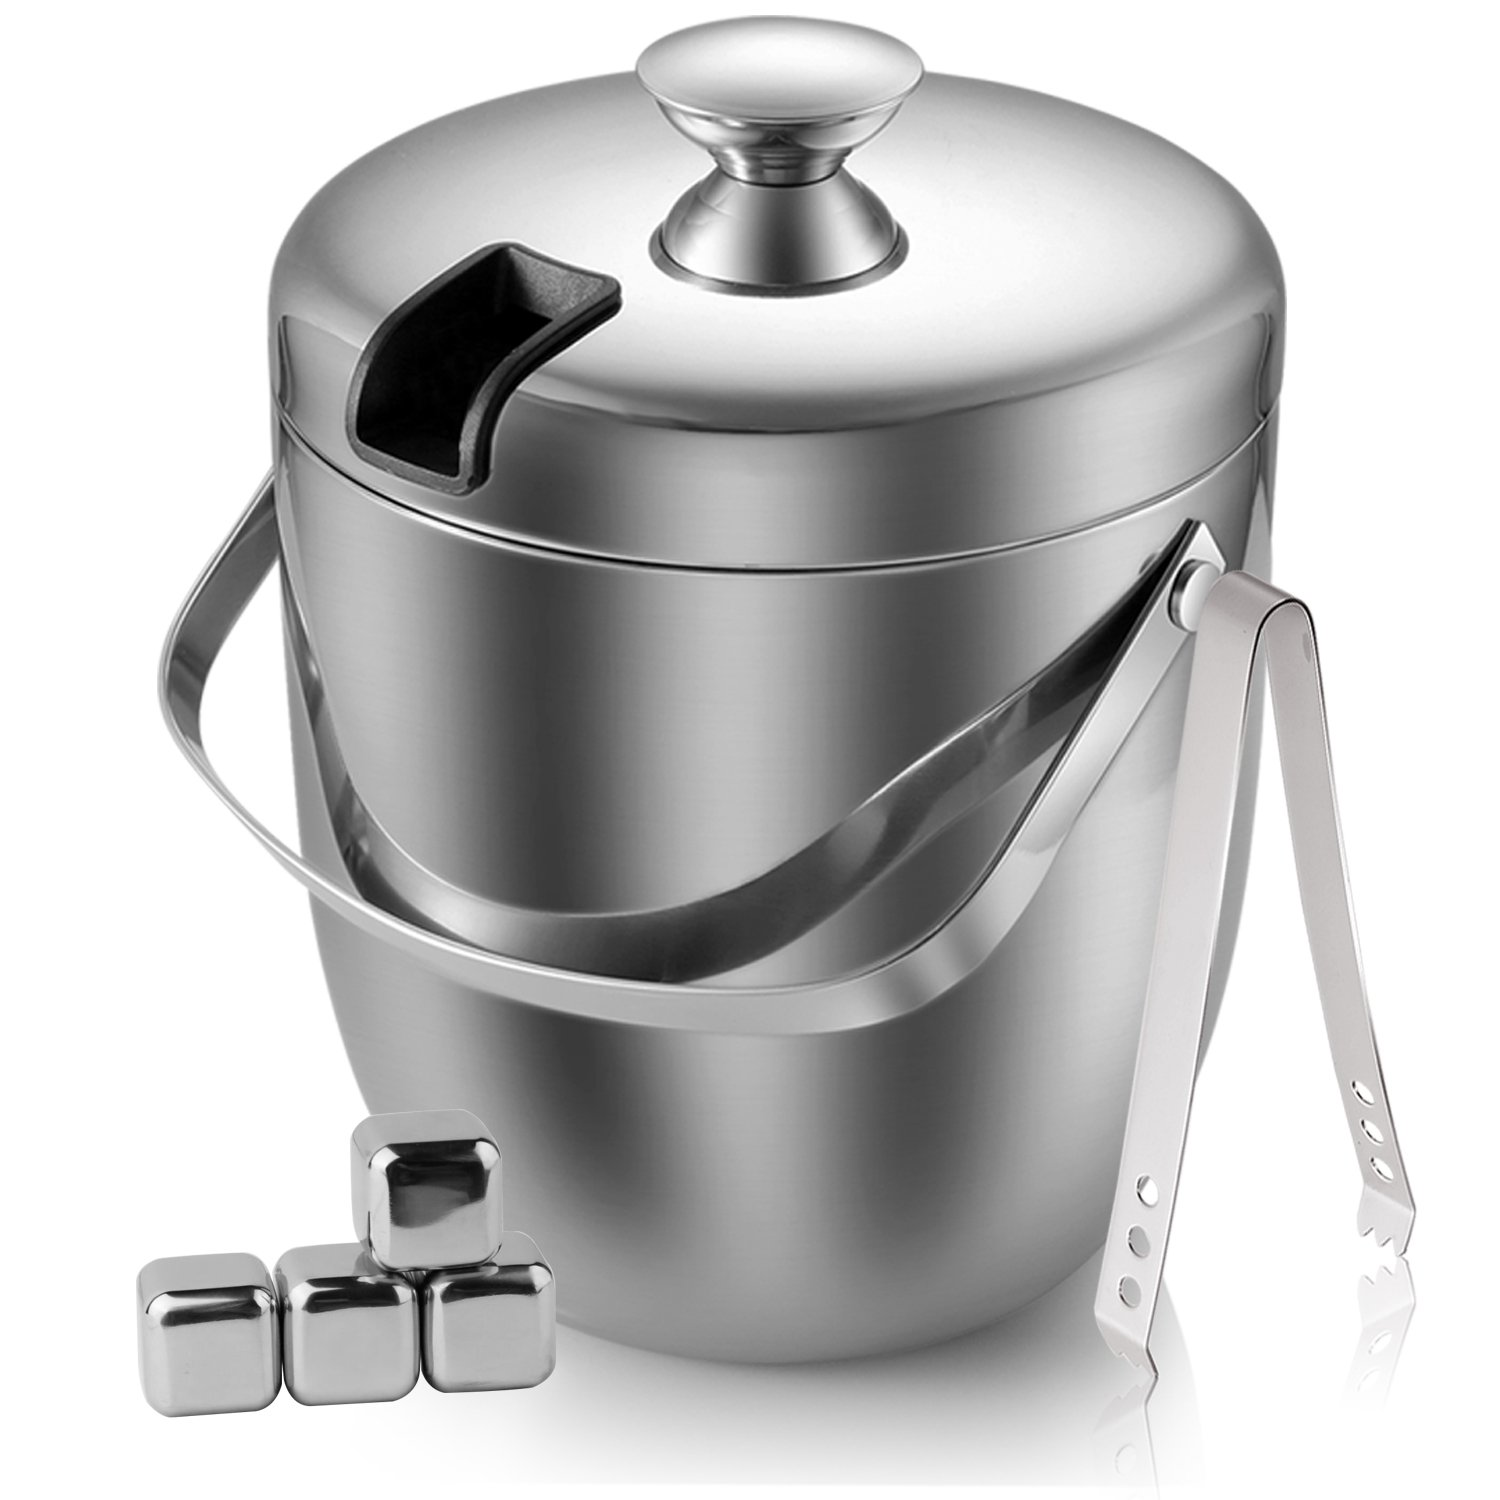 Fortune Candy Double Wall Stainless Steel Ice Bucket with Tong and Ice Cubes,3 Litre/0.8 Gal